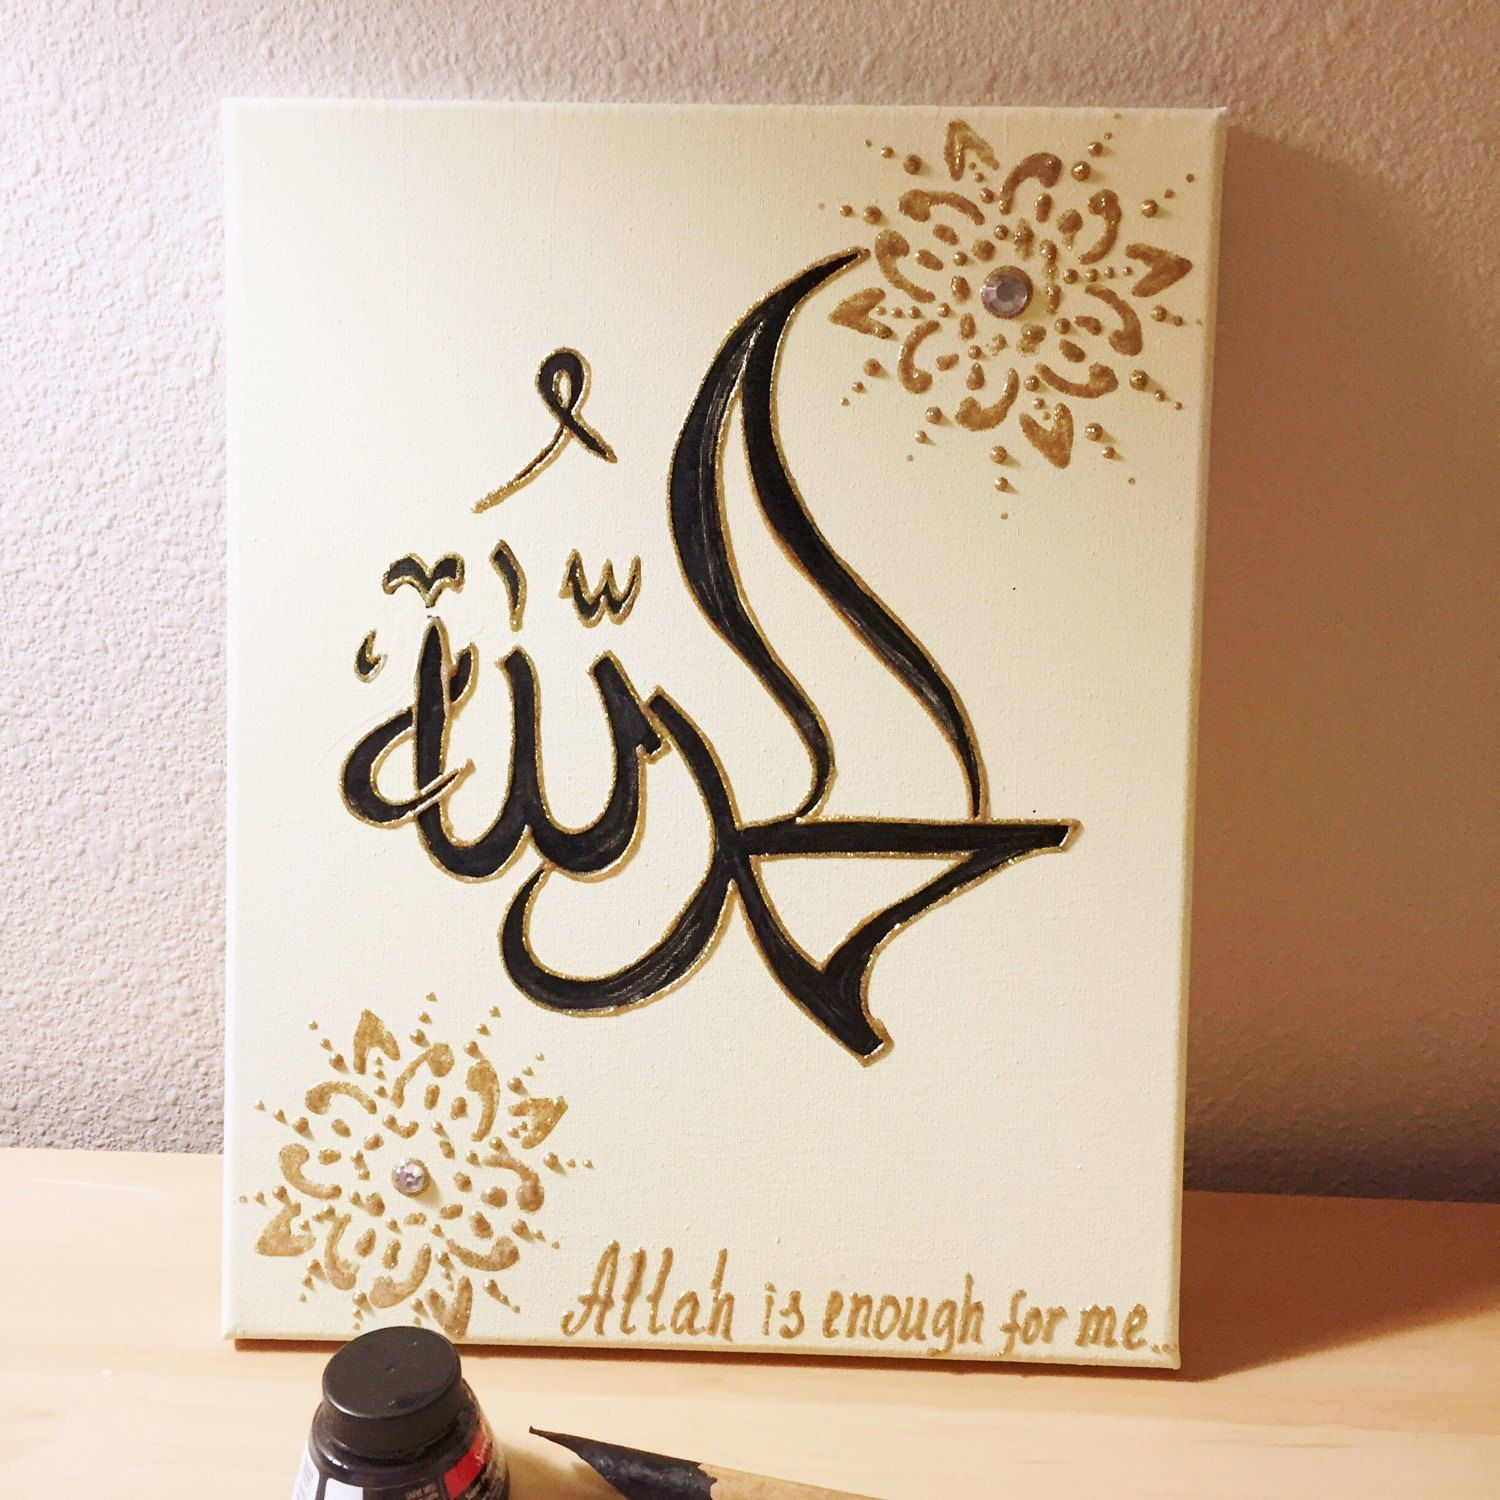 Alhamdulillah Calligraphy On Canvas 11 By 14 Inches Islamic Calligraphy Painting Arabic Calligraphy Art Islamic Art Calligraphy